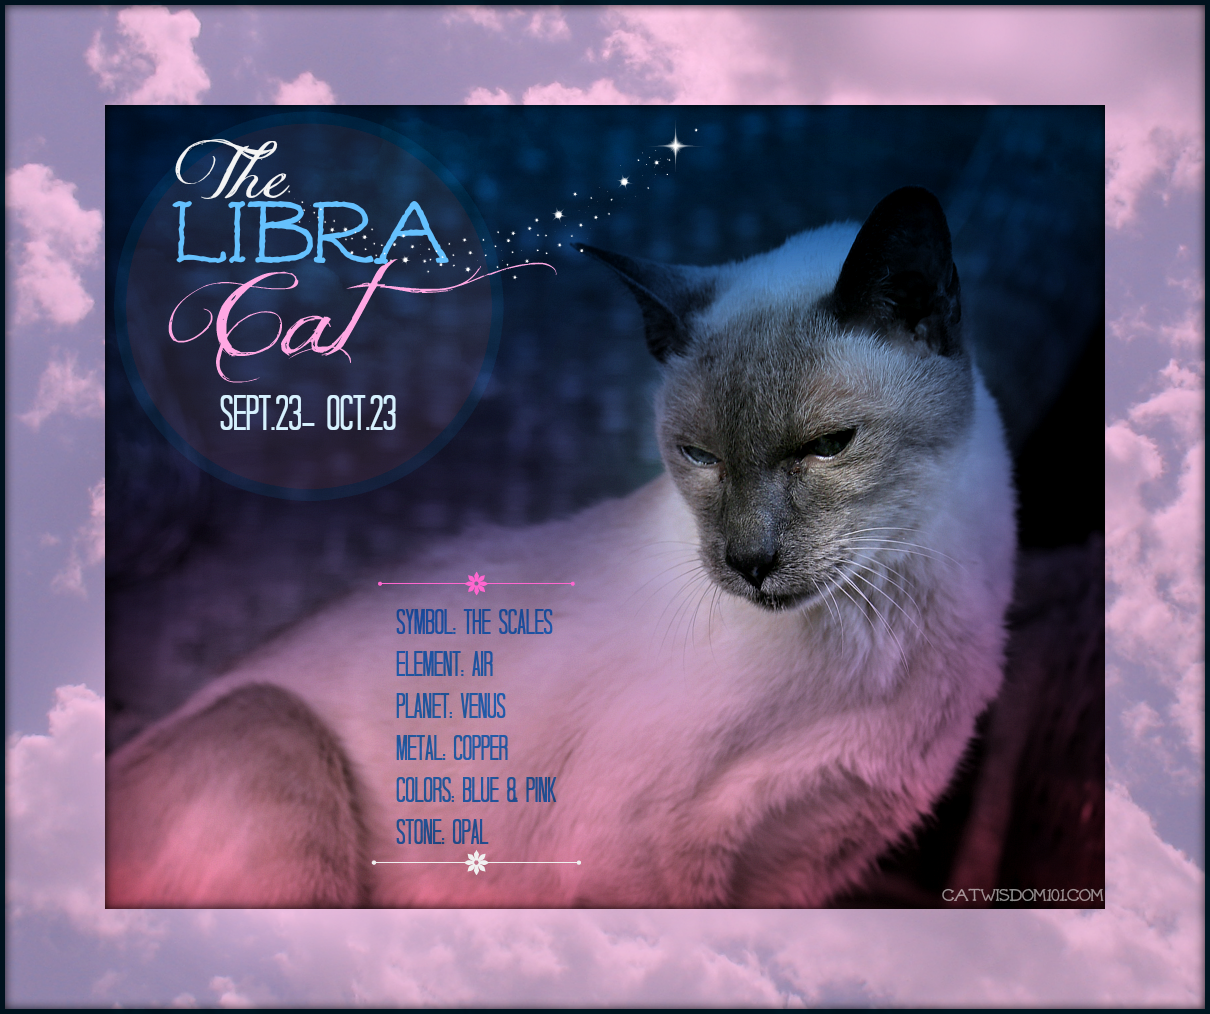 Merlin cat-astrology Libra